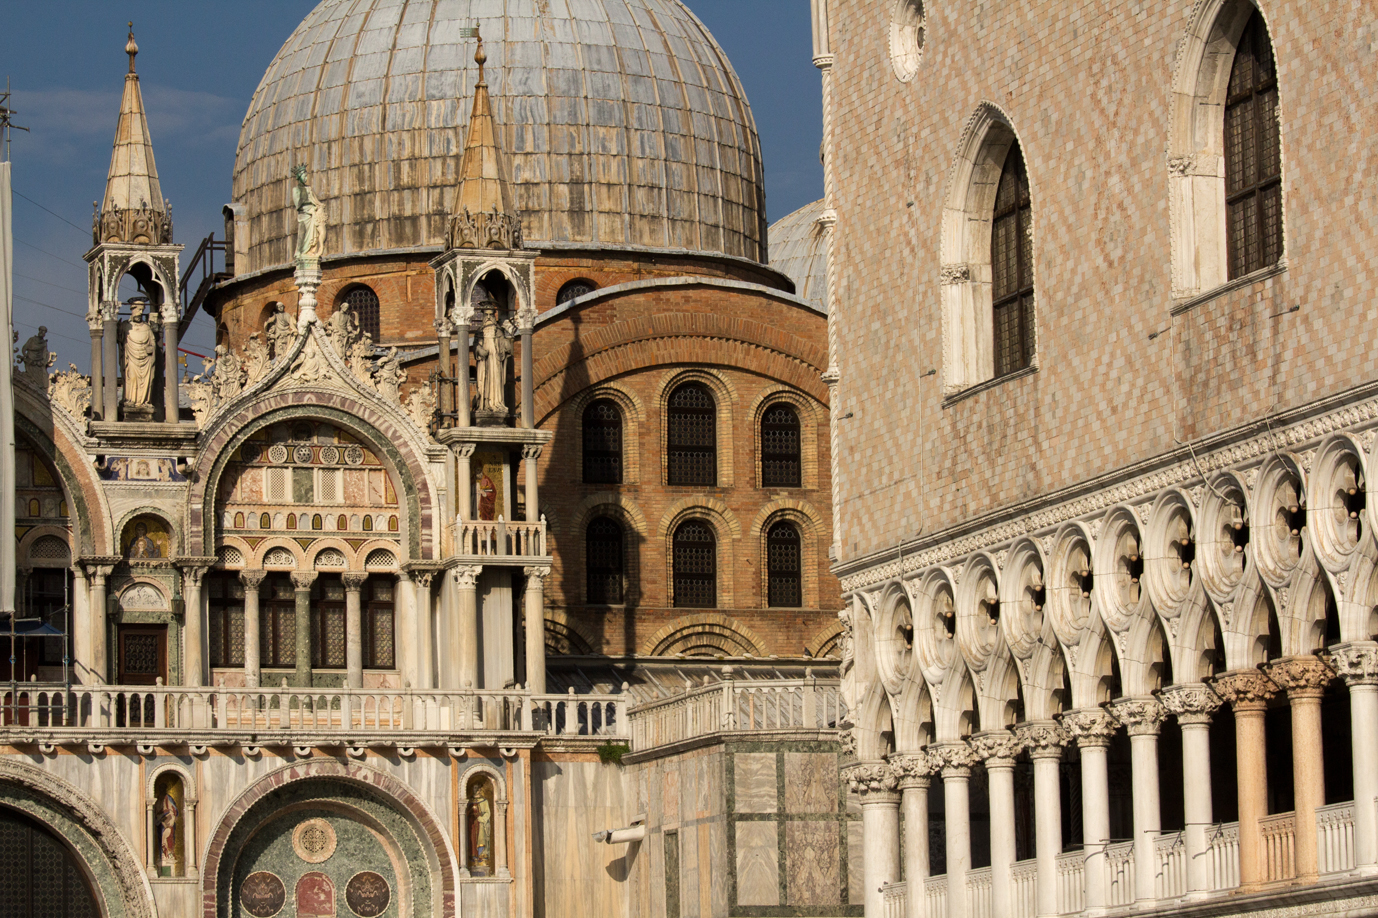 Doges' Palace and Domes